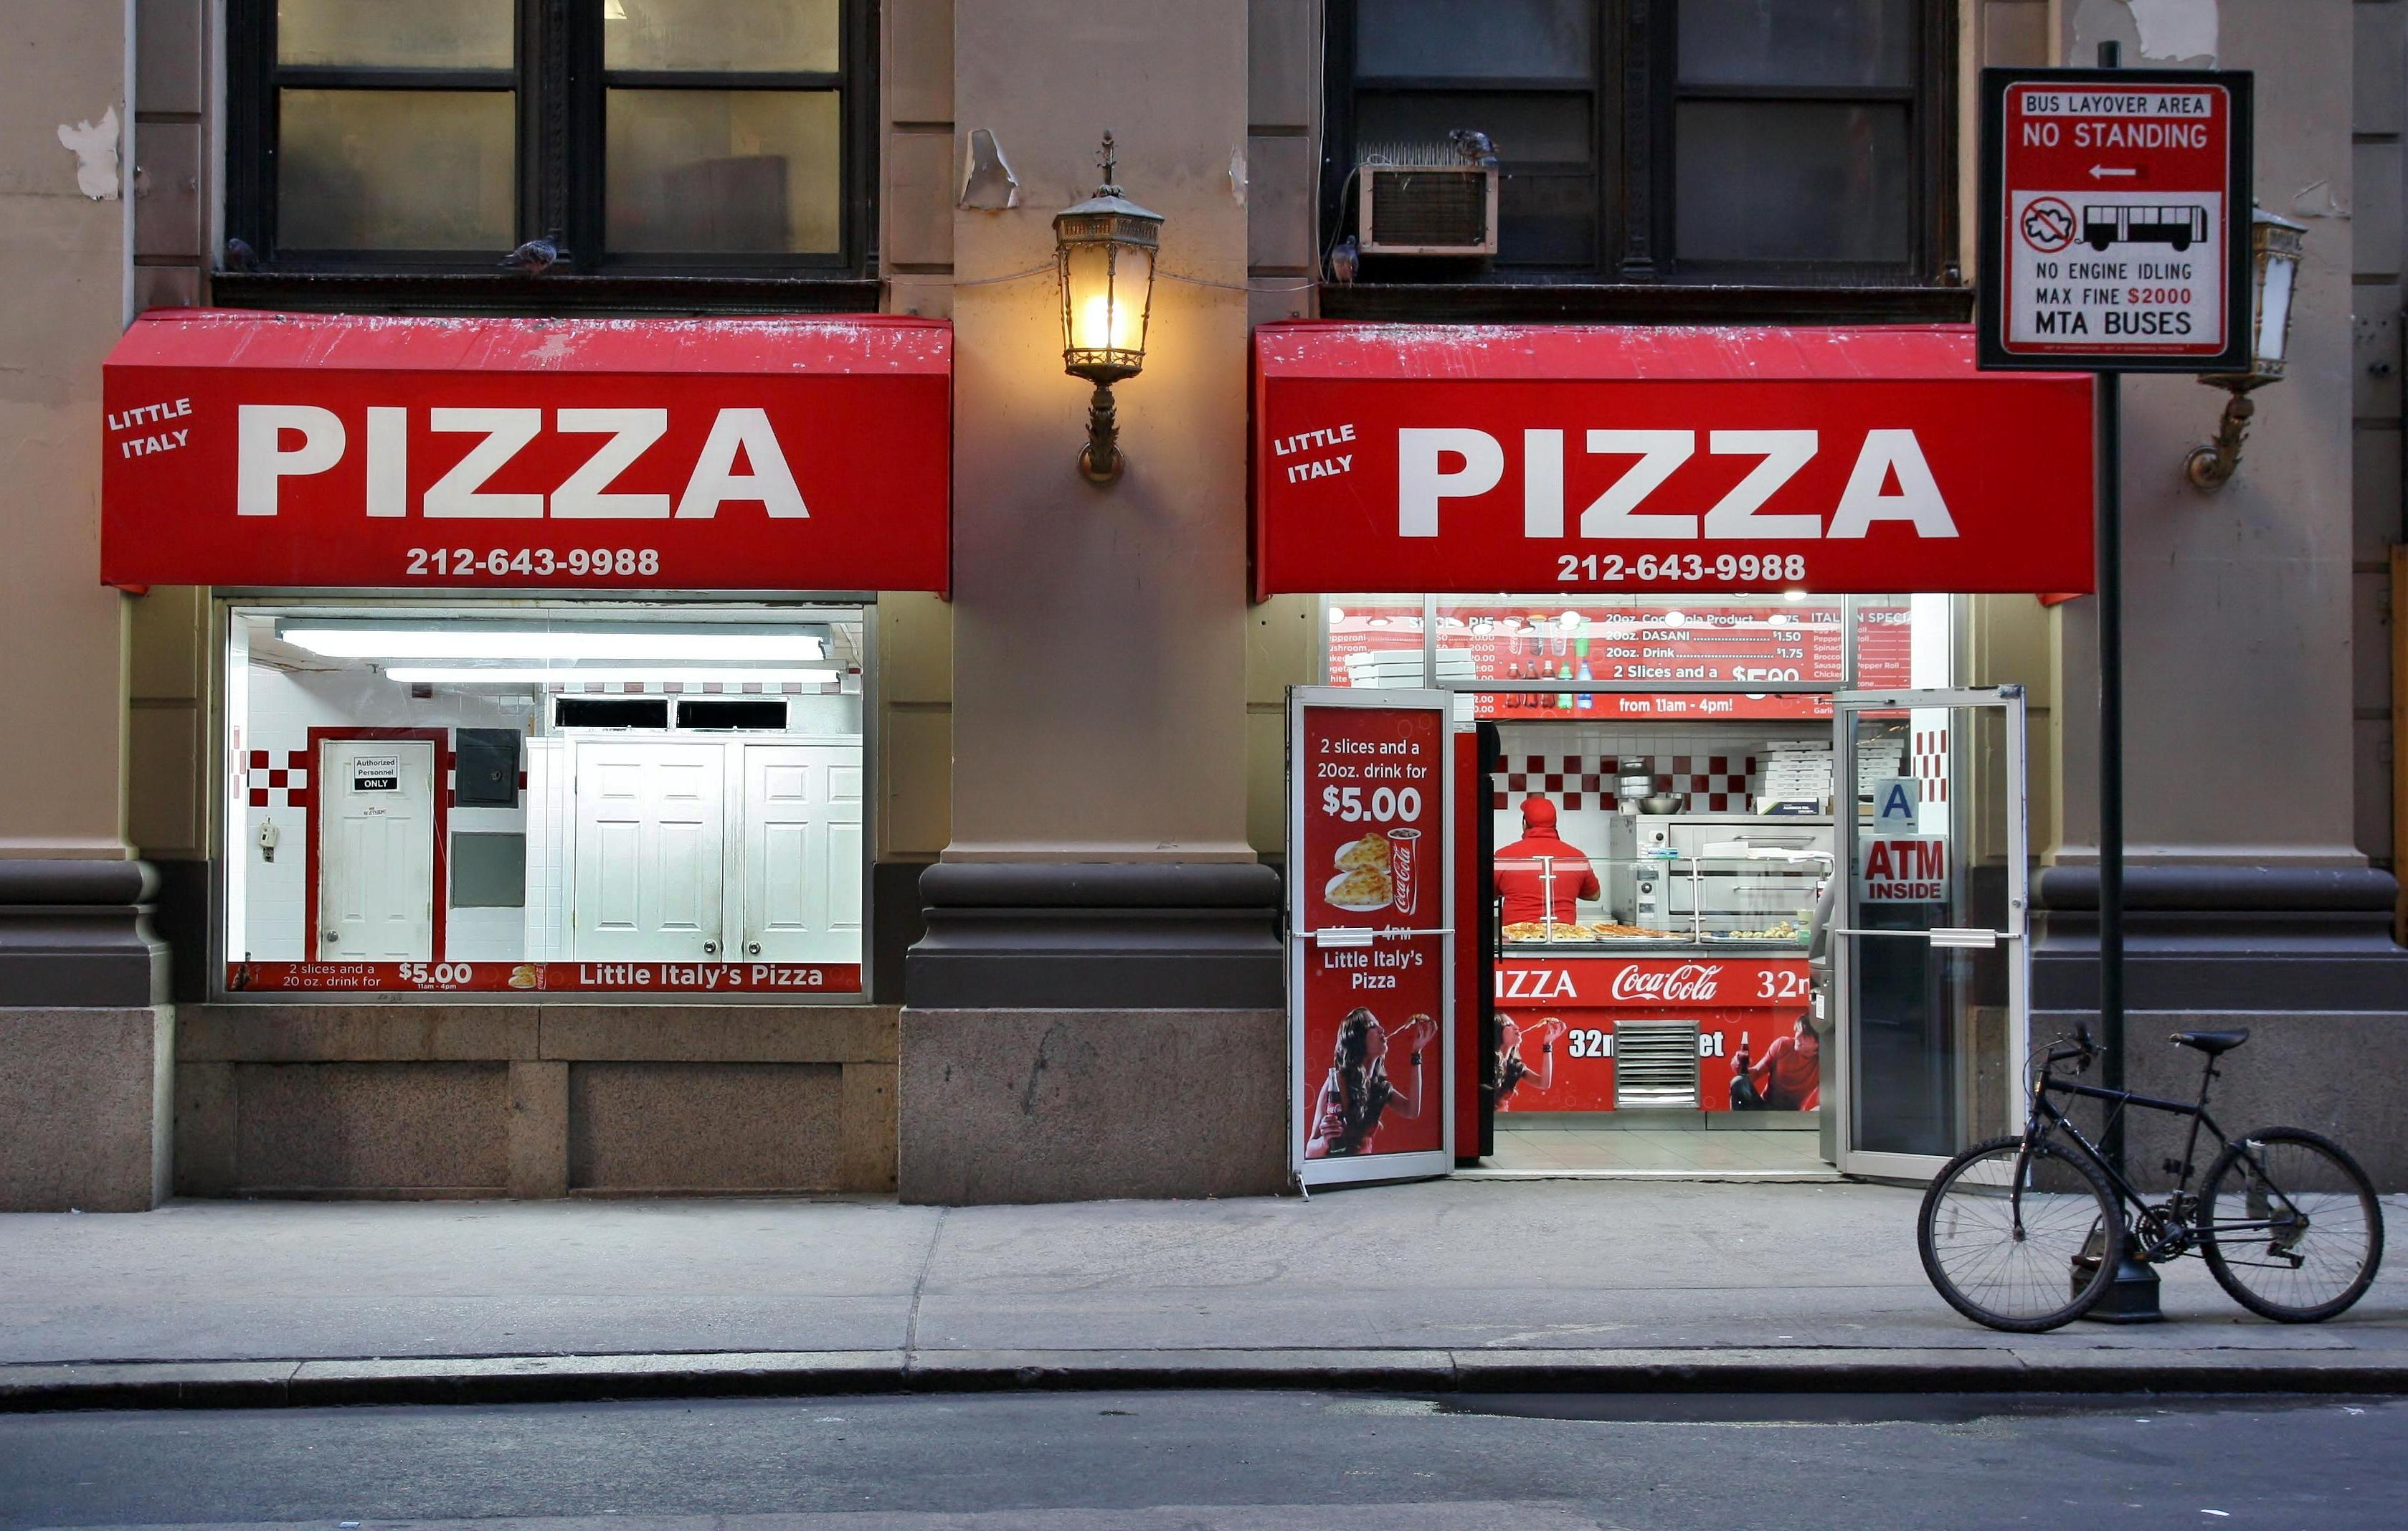 All sizes | Little Italy Pizza | Flickr - Photo Sharing!